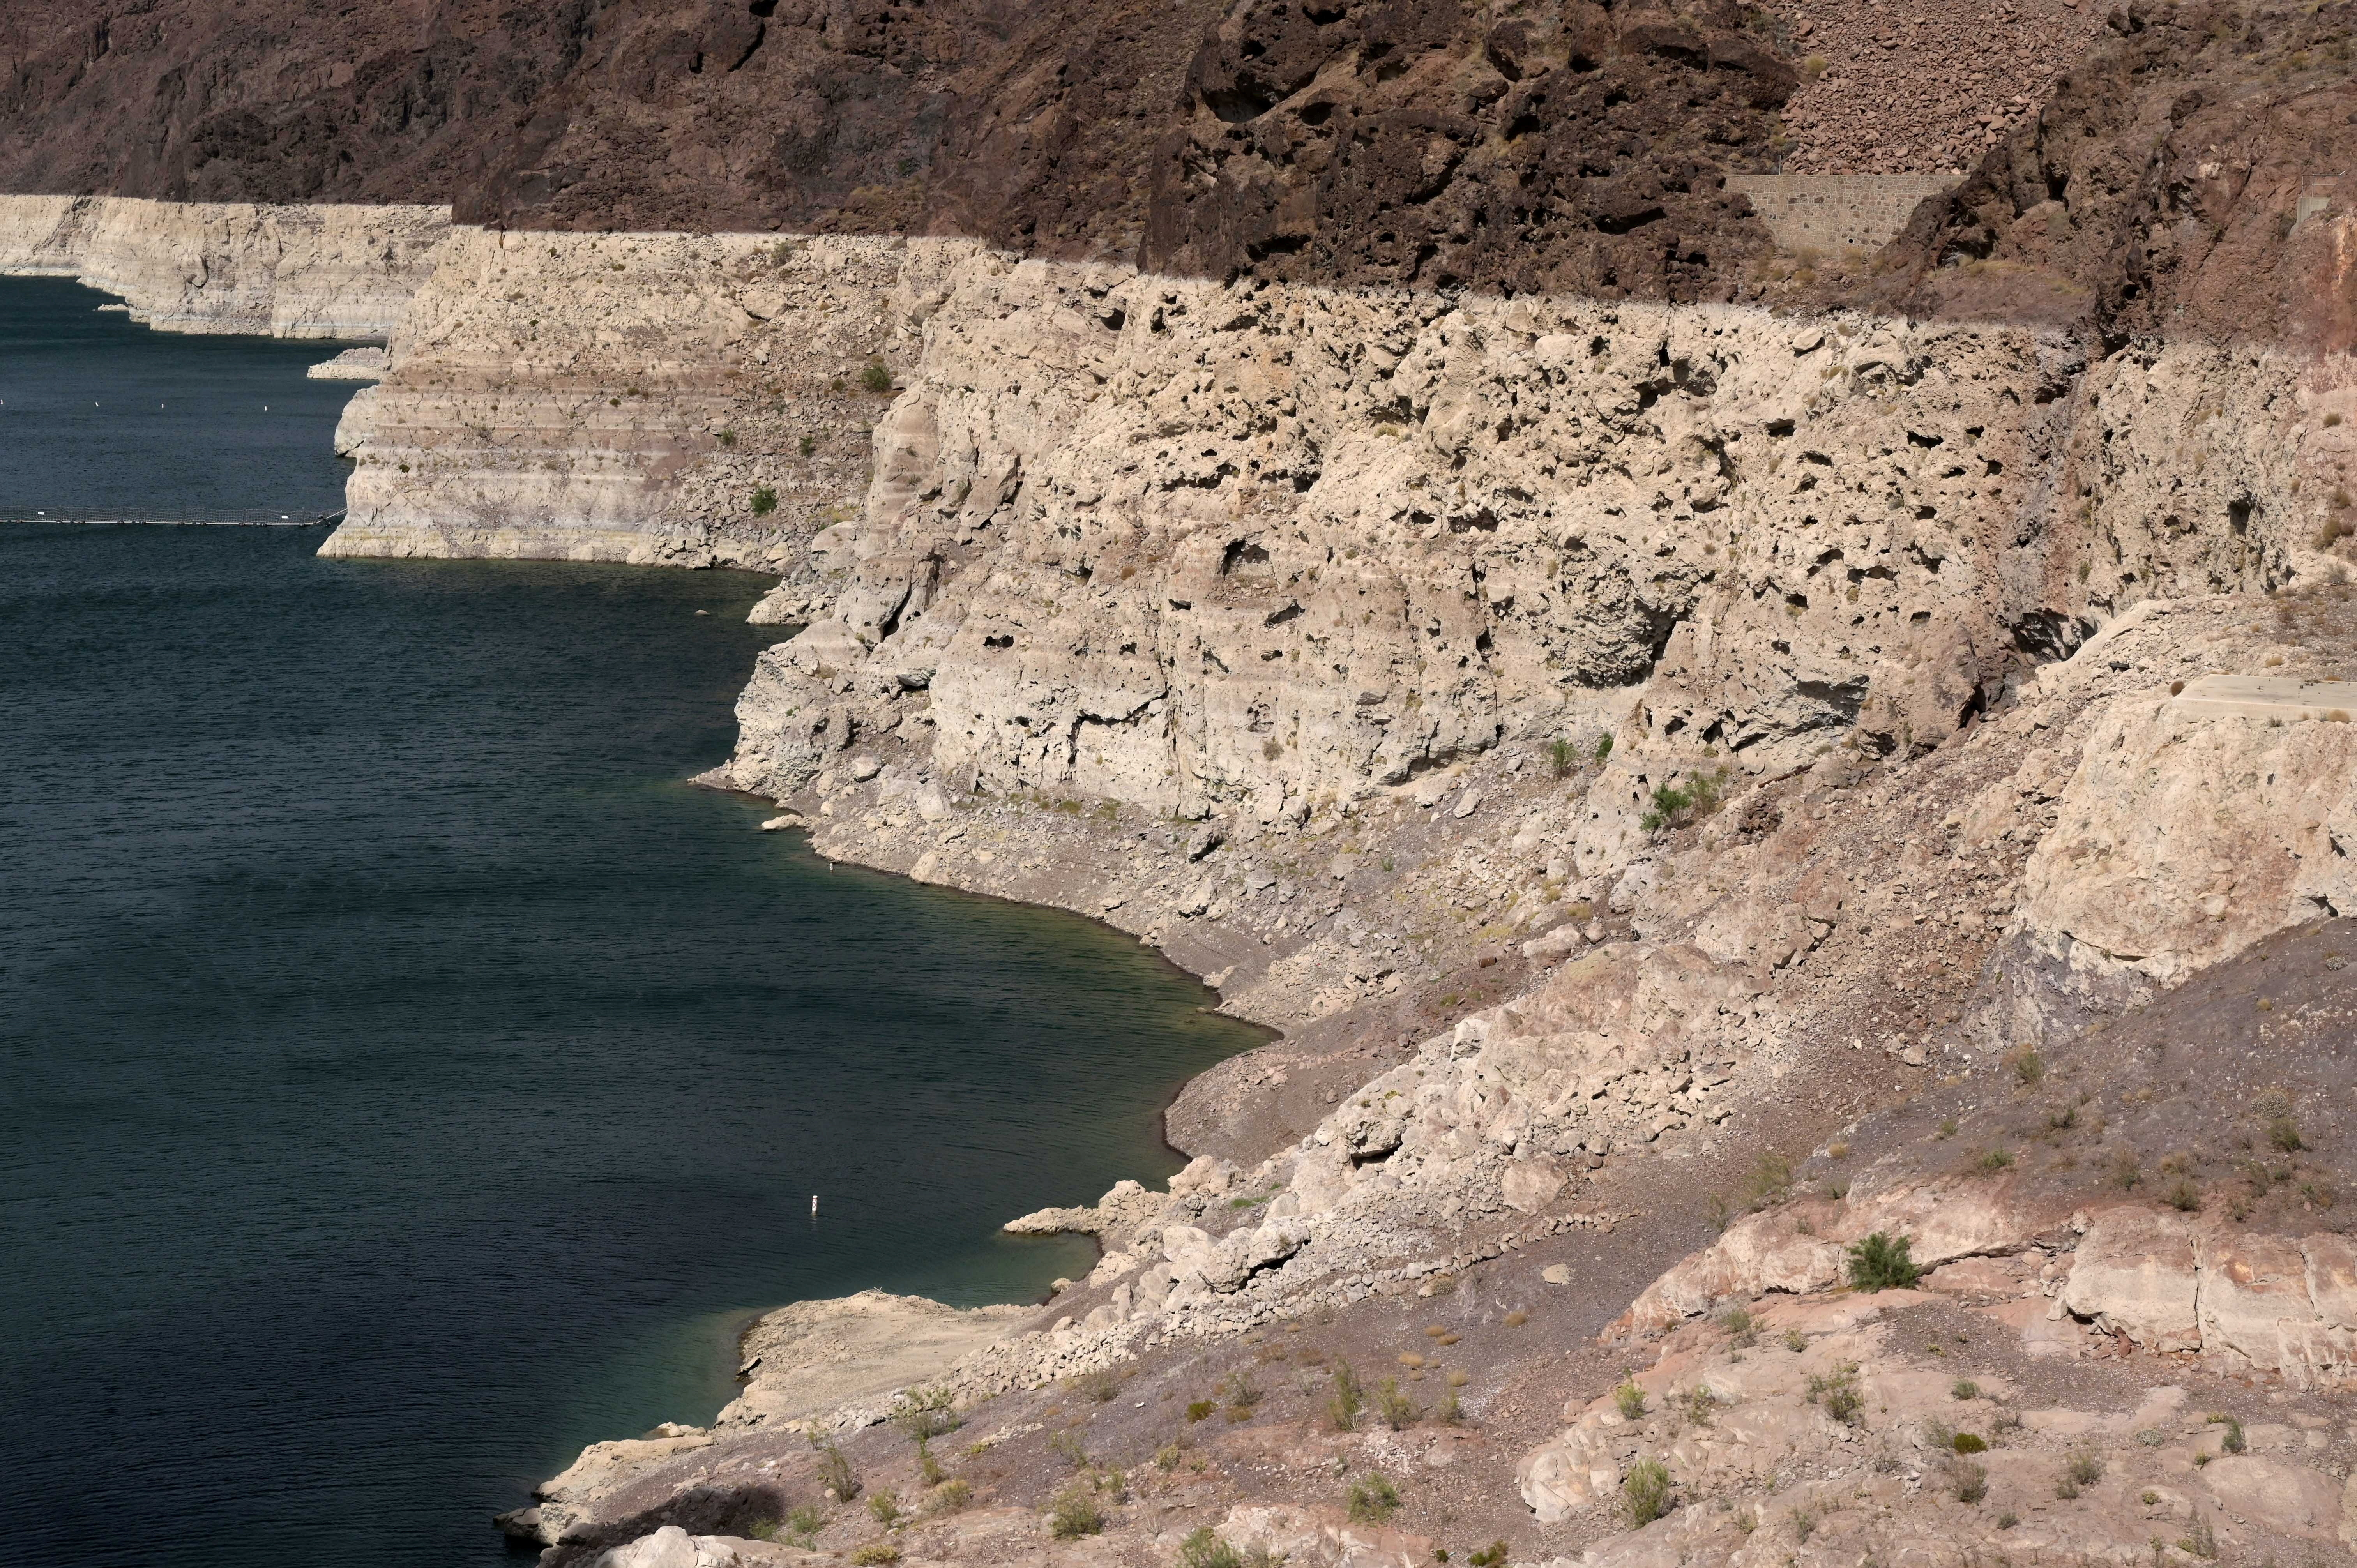 Low water levels due to drought are seen in the Hoover Dam reservoir of Lake Mead near Las Vegas, Nevada, U.S. June 9, 2021. Picture taken June 9, 2021.  REUTERS/Bridget Bennett - RC2AXN96K2UI